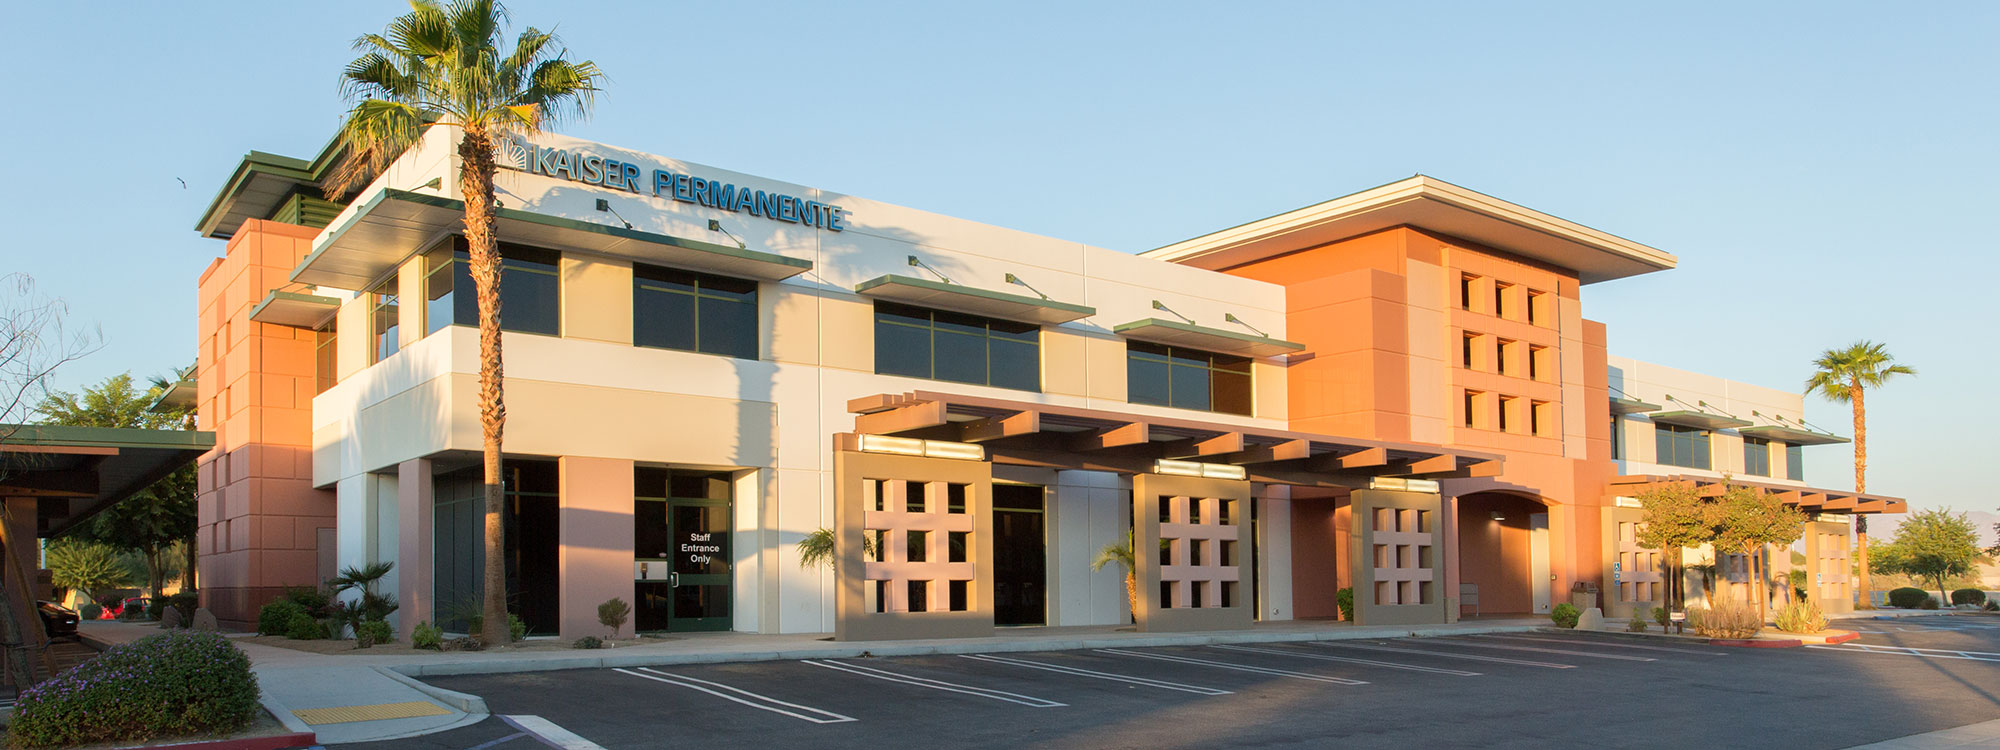 Medical facility builder - Palm Desert Construction firm - JW Design & Construction